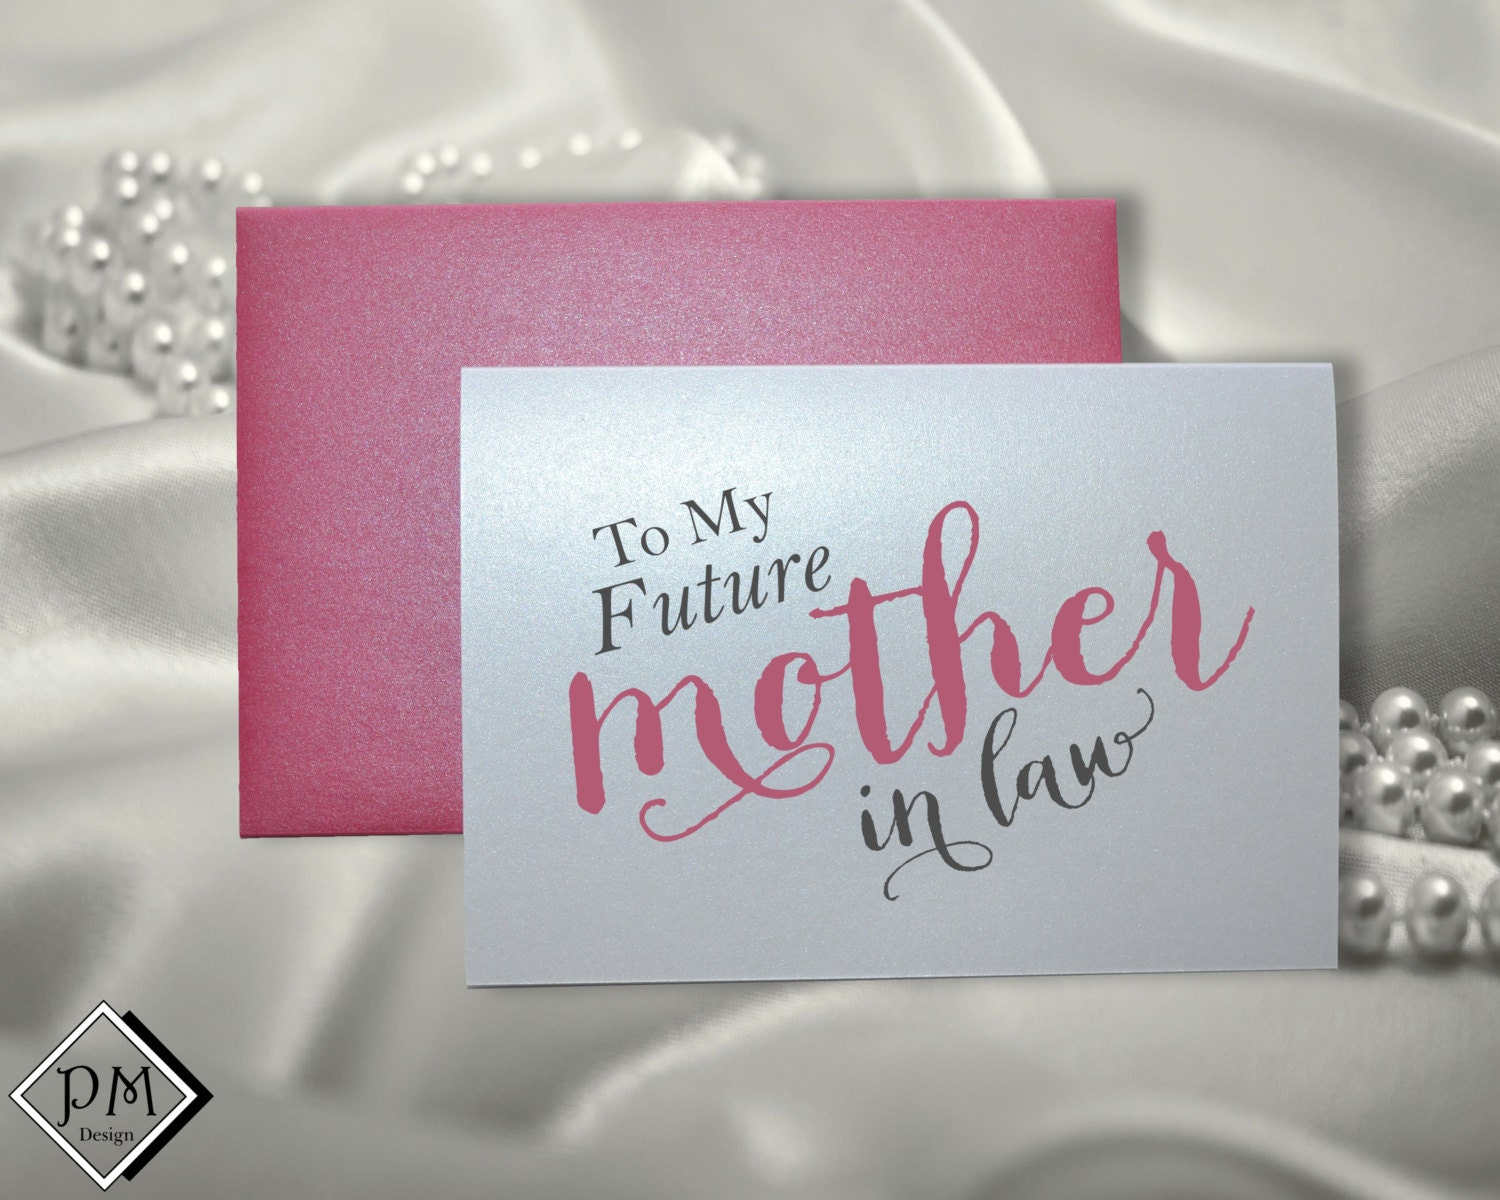 Wedding Gift For Mother In Law: Gift For Mother In Law Wedding Card In Laws Present By